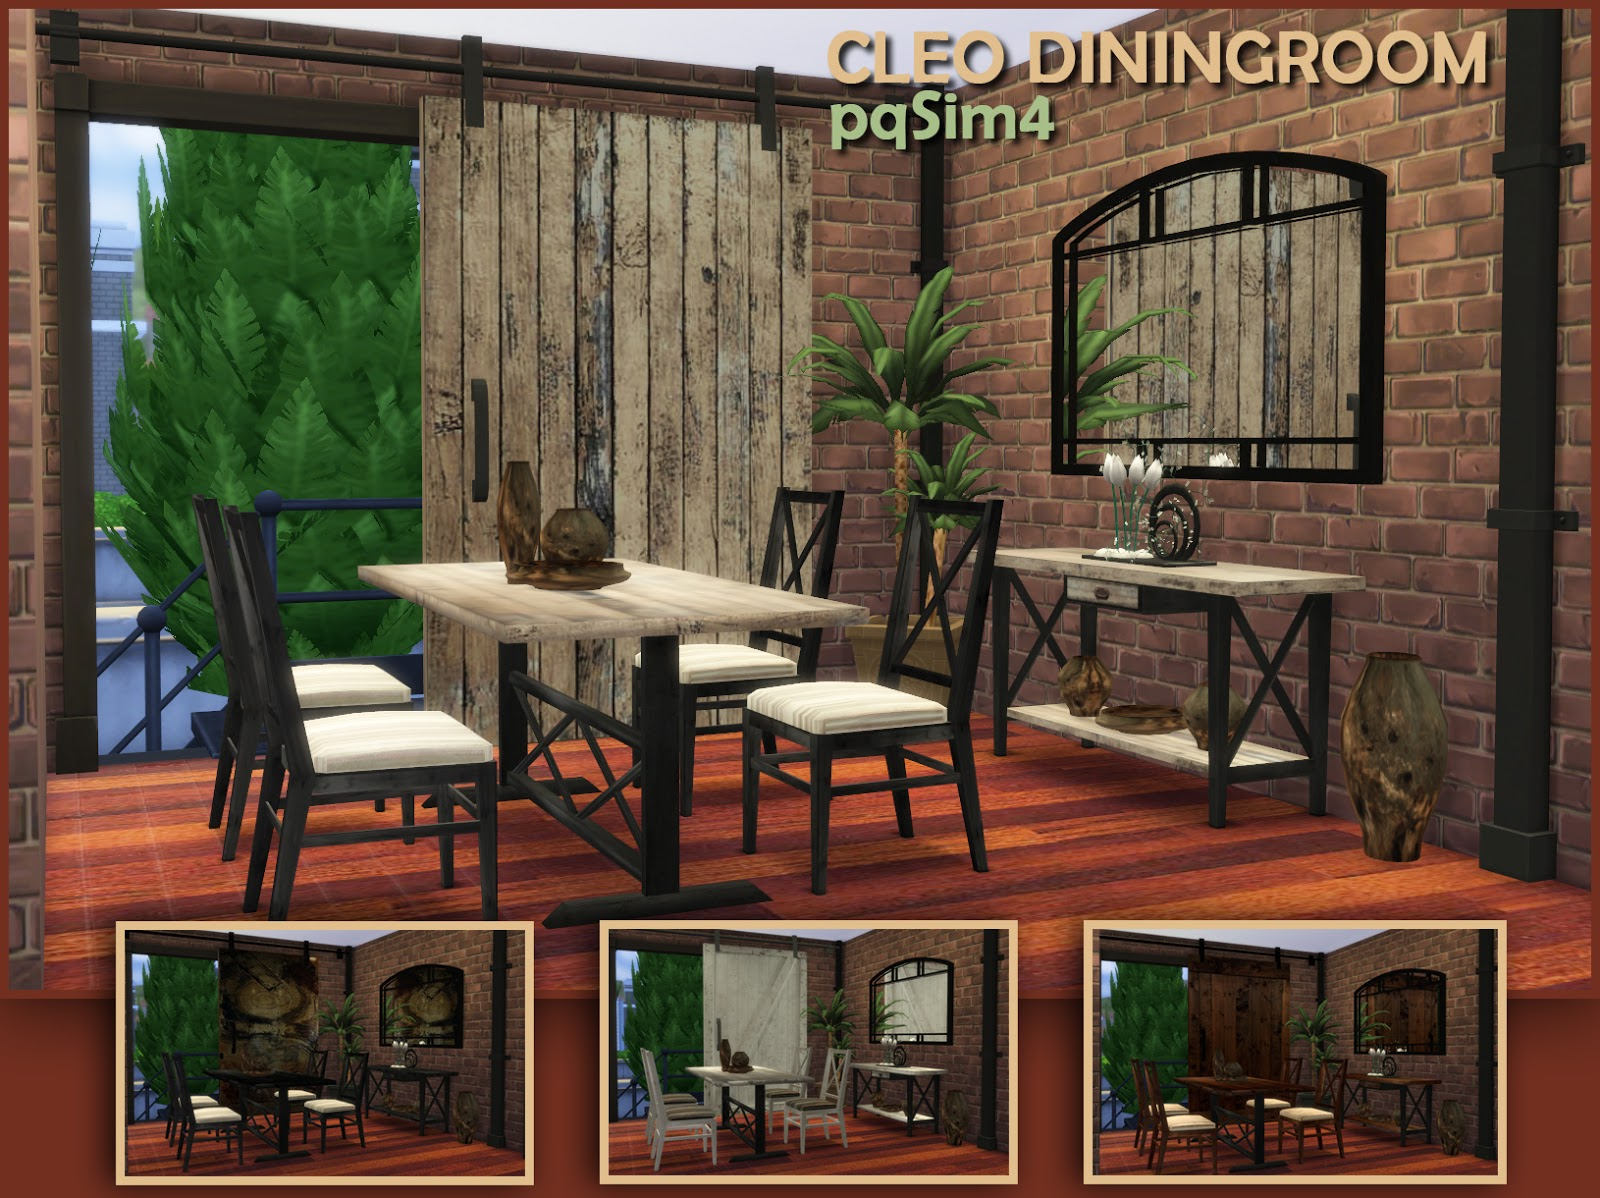 Cleo Dining Set by pqSim4